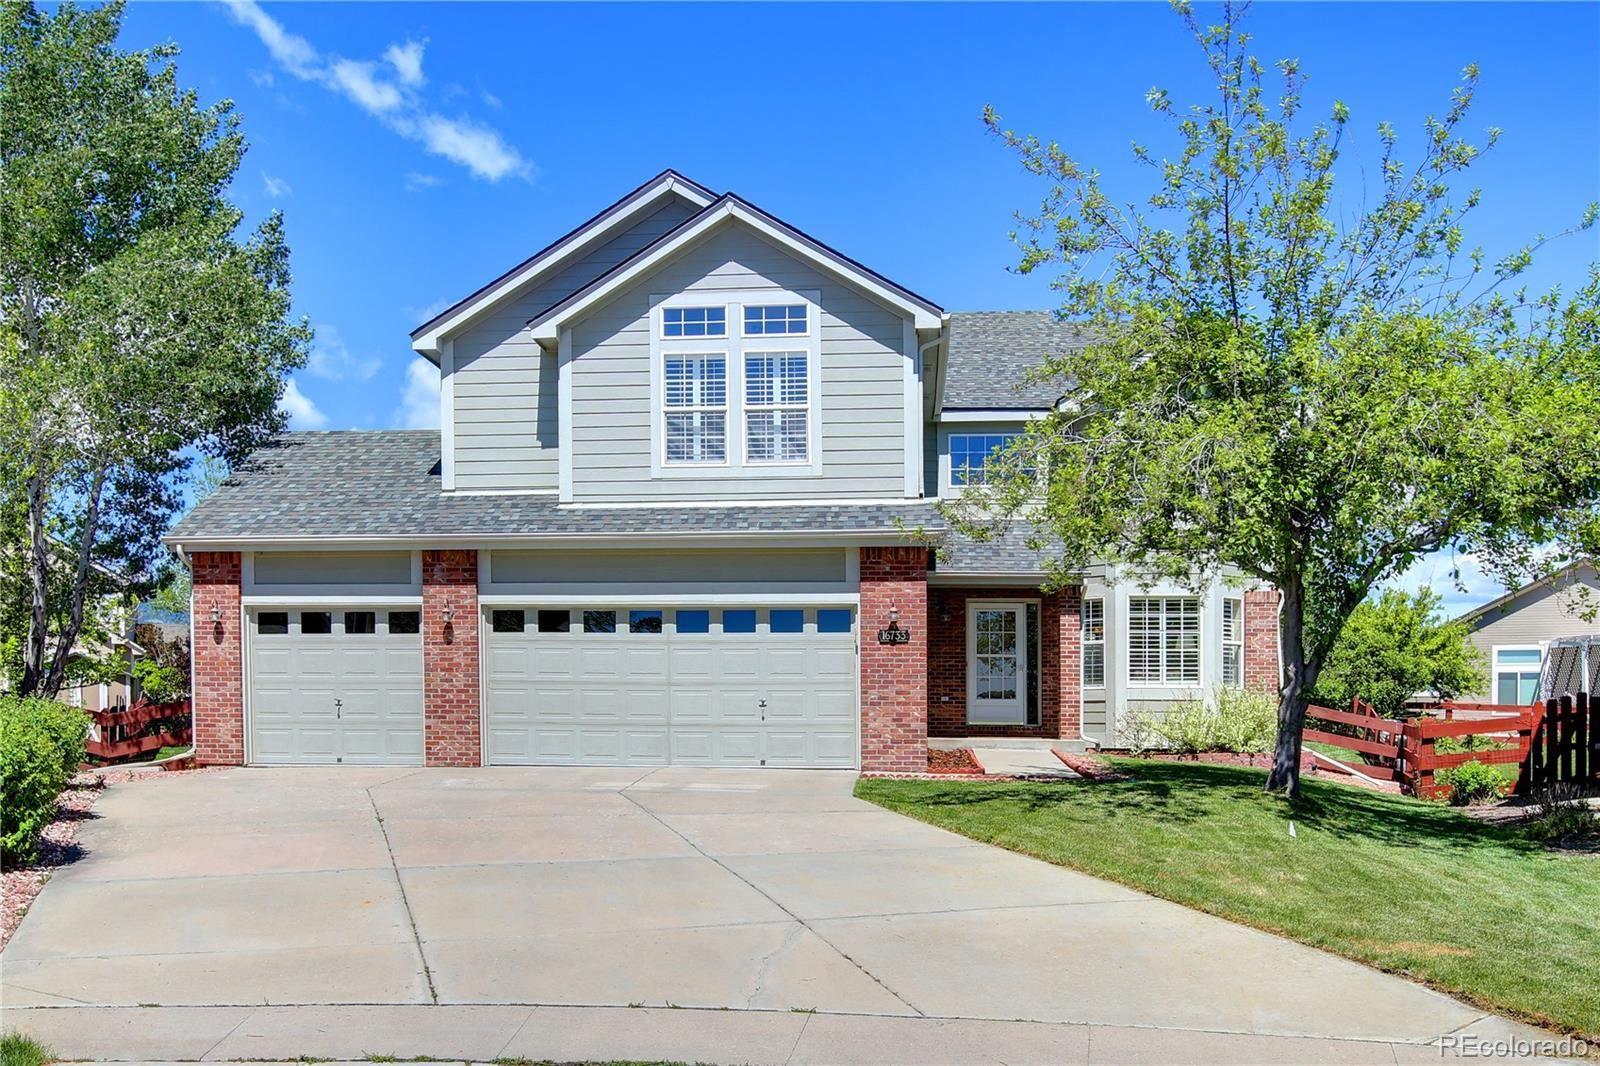 16733 W 61st Place, Arvada, CO 80403 - #: 9573257